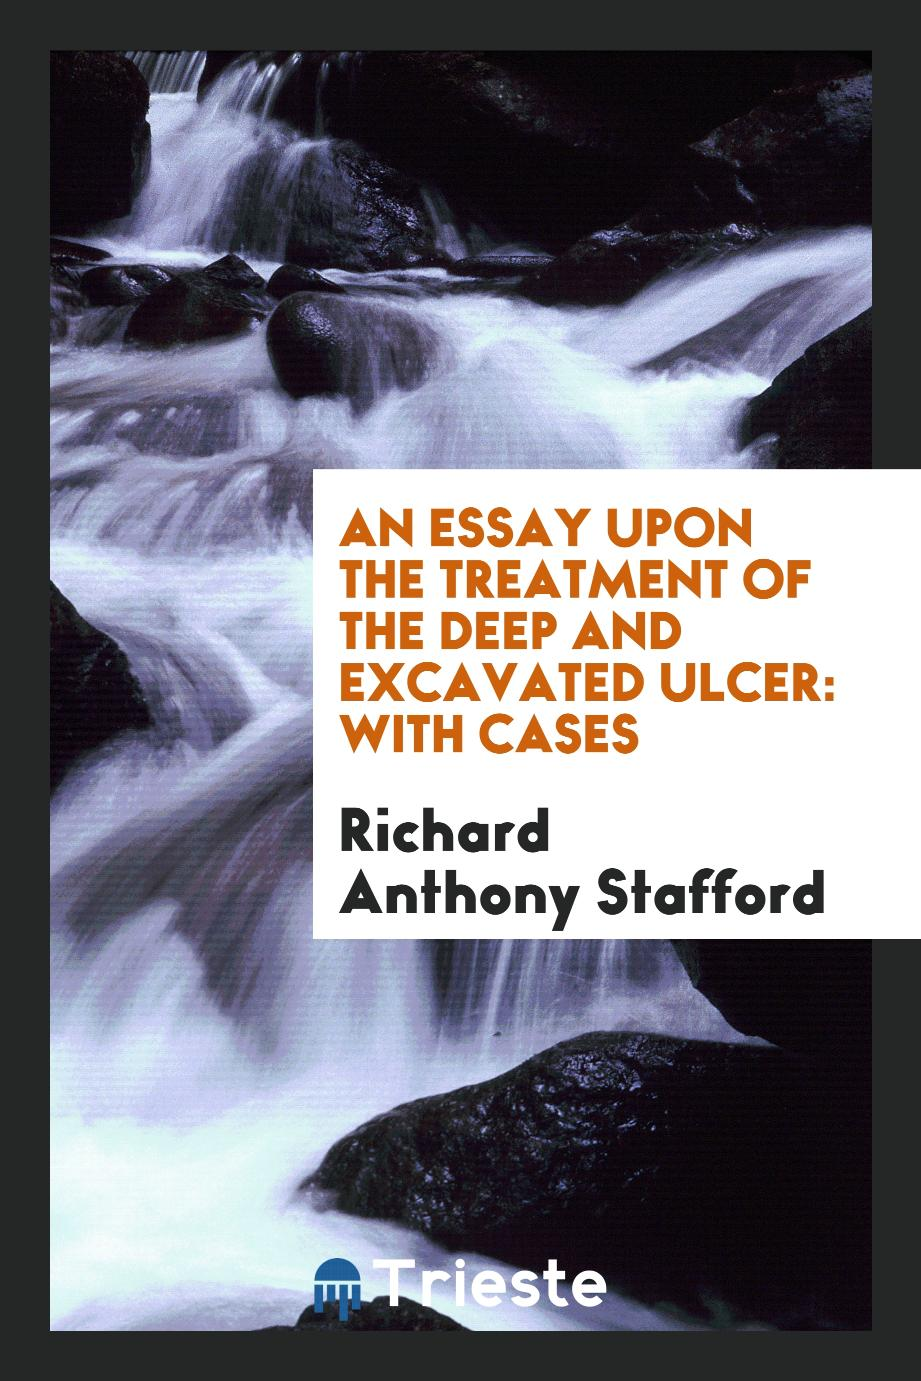 An essay upon the treatment of the deep and excavated ulcer: with cases